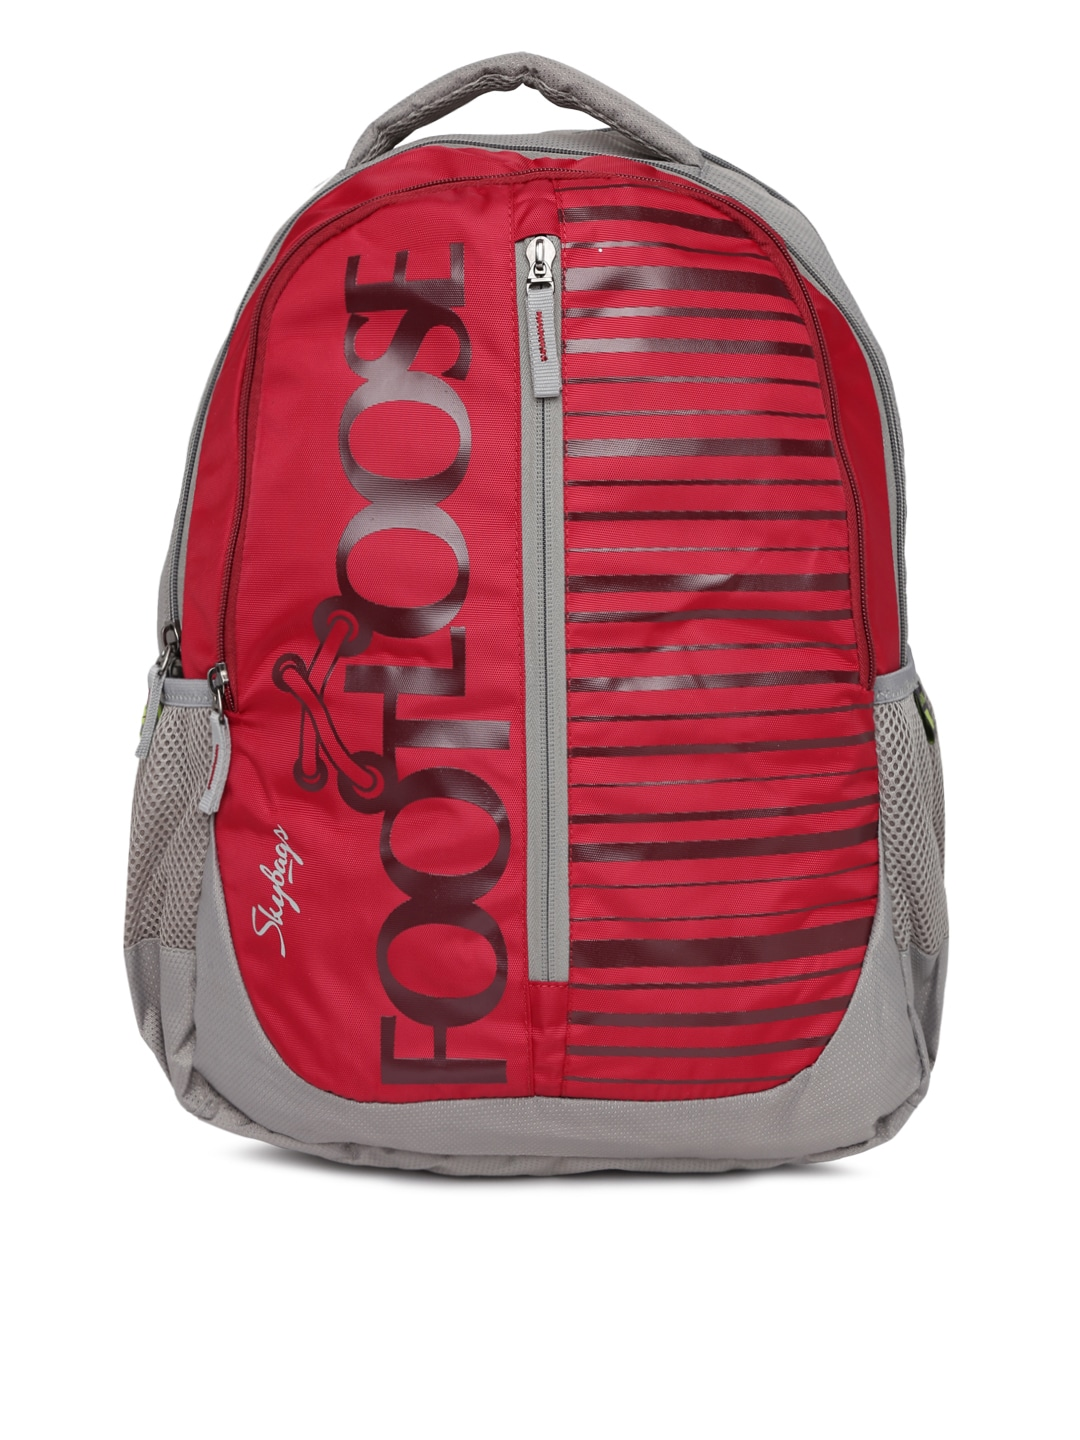 796e350b23 Skybags Red - Buy Skybags Red online in India